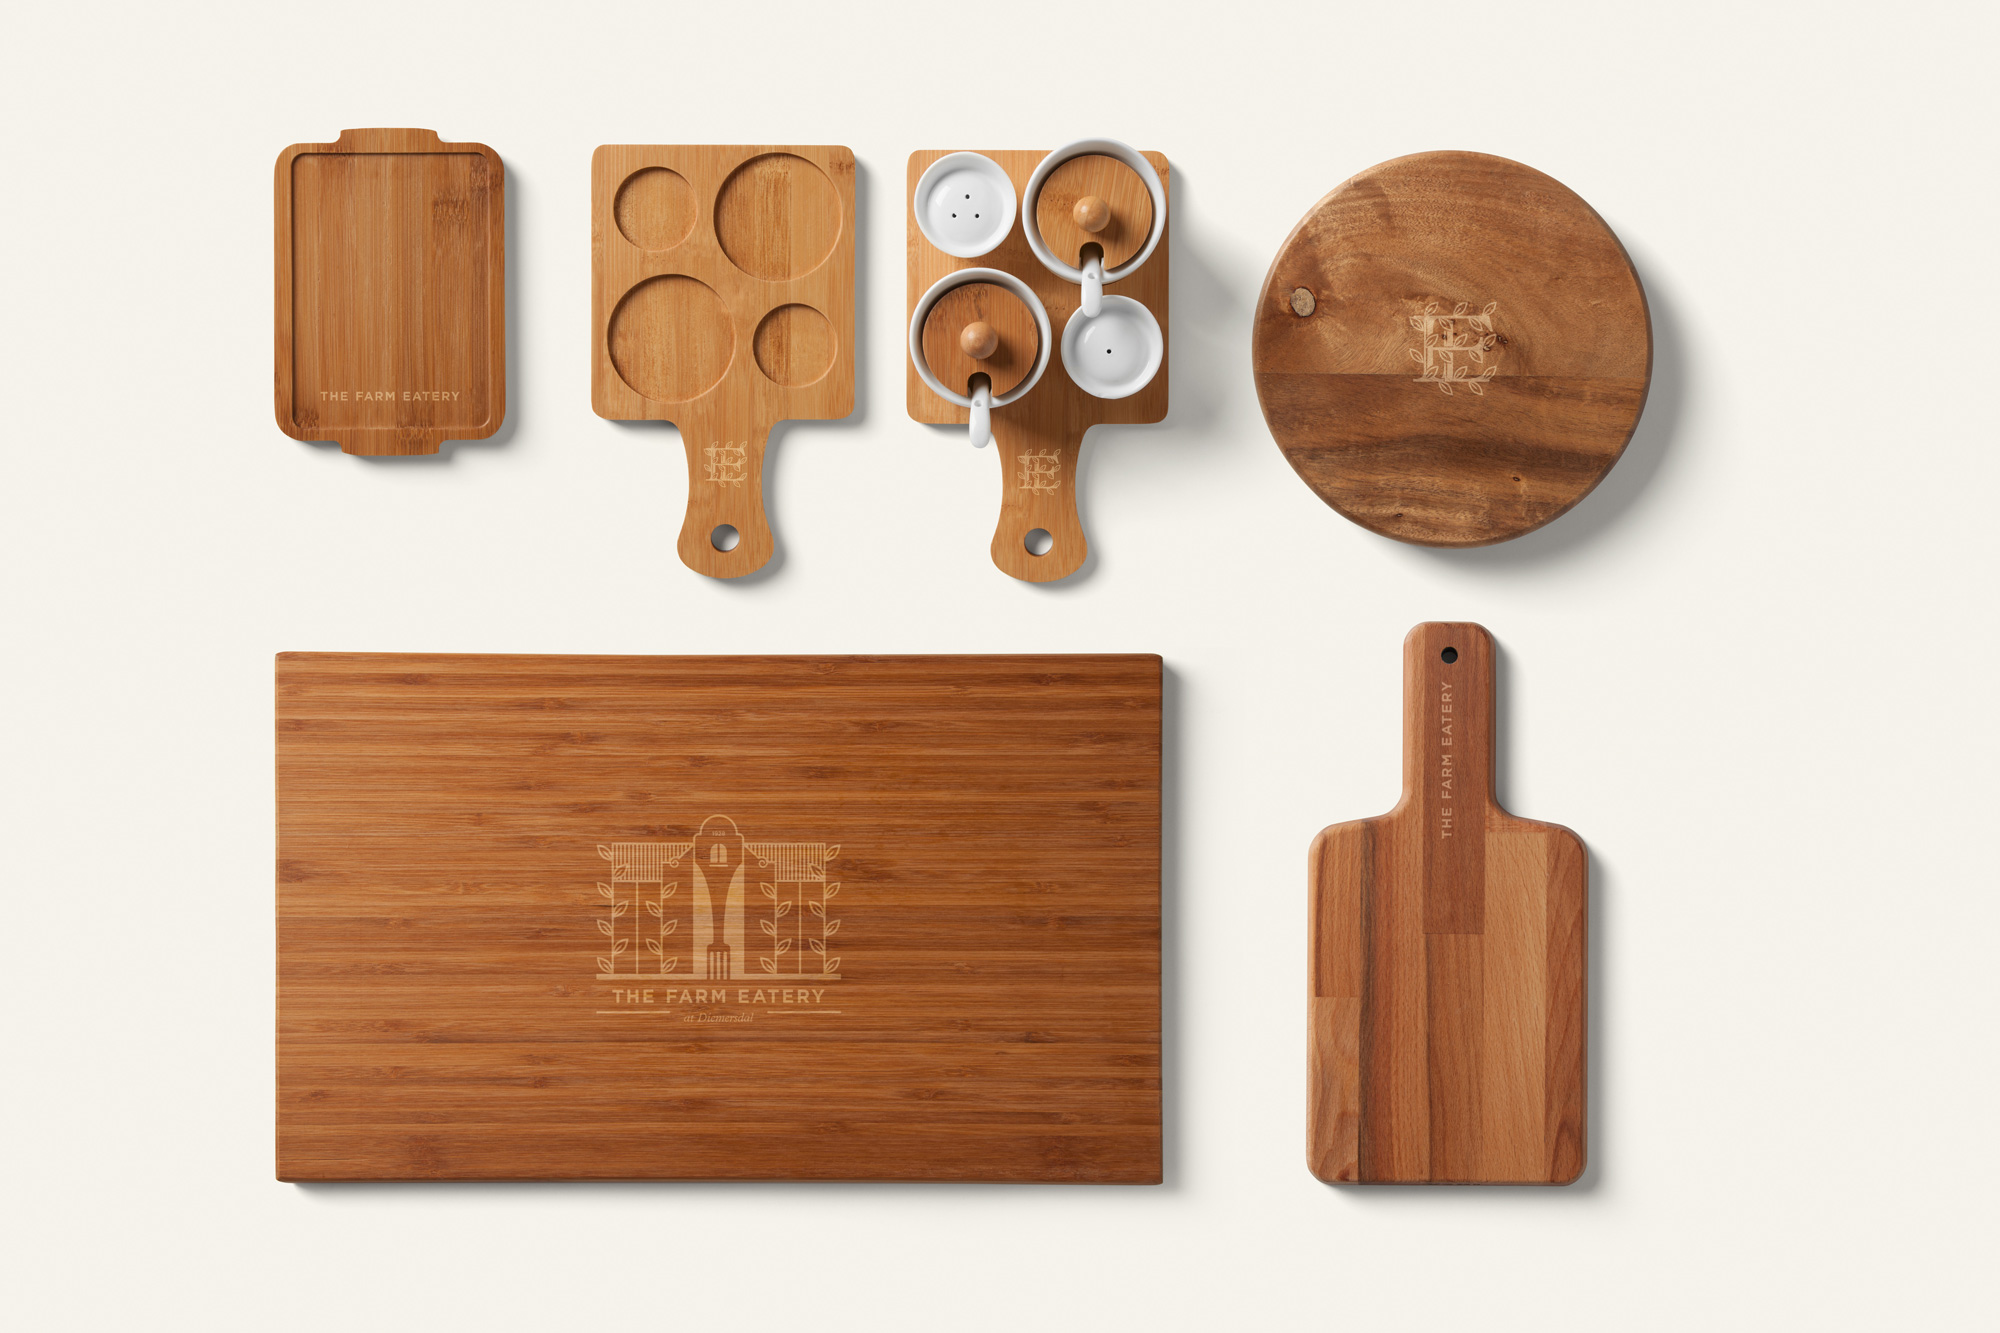 The Farm Eatery Serving Boards